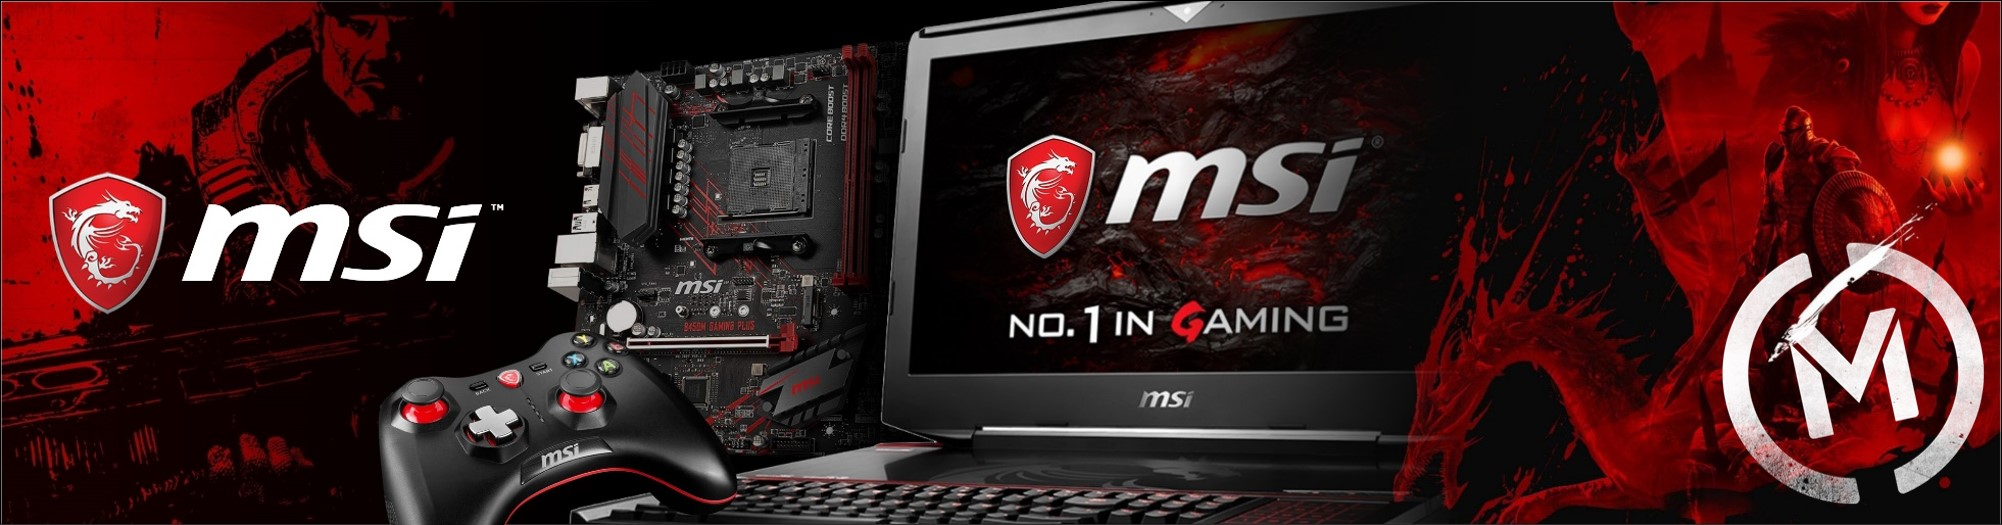 MSI PC Gaming Website Banner